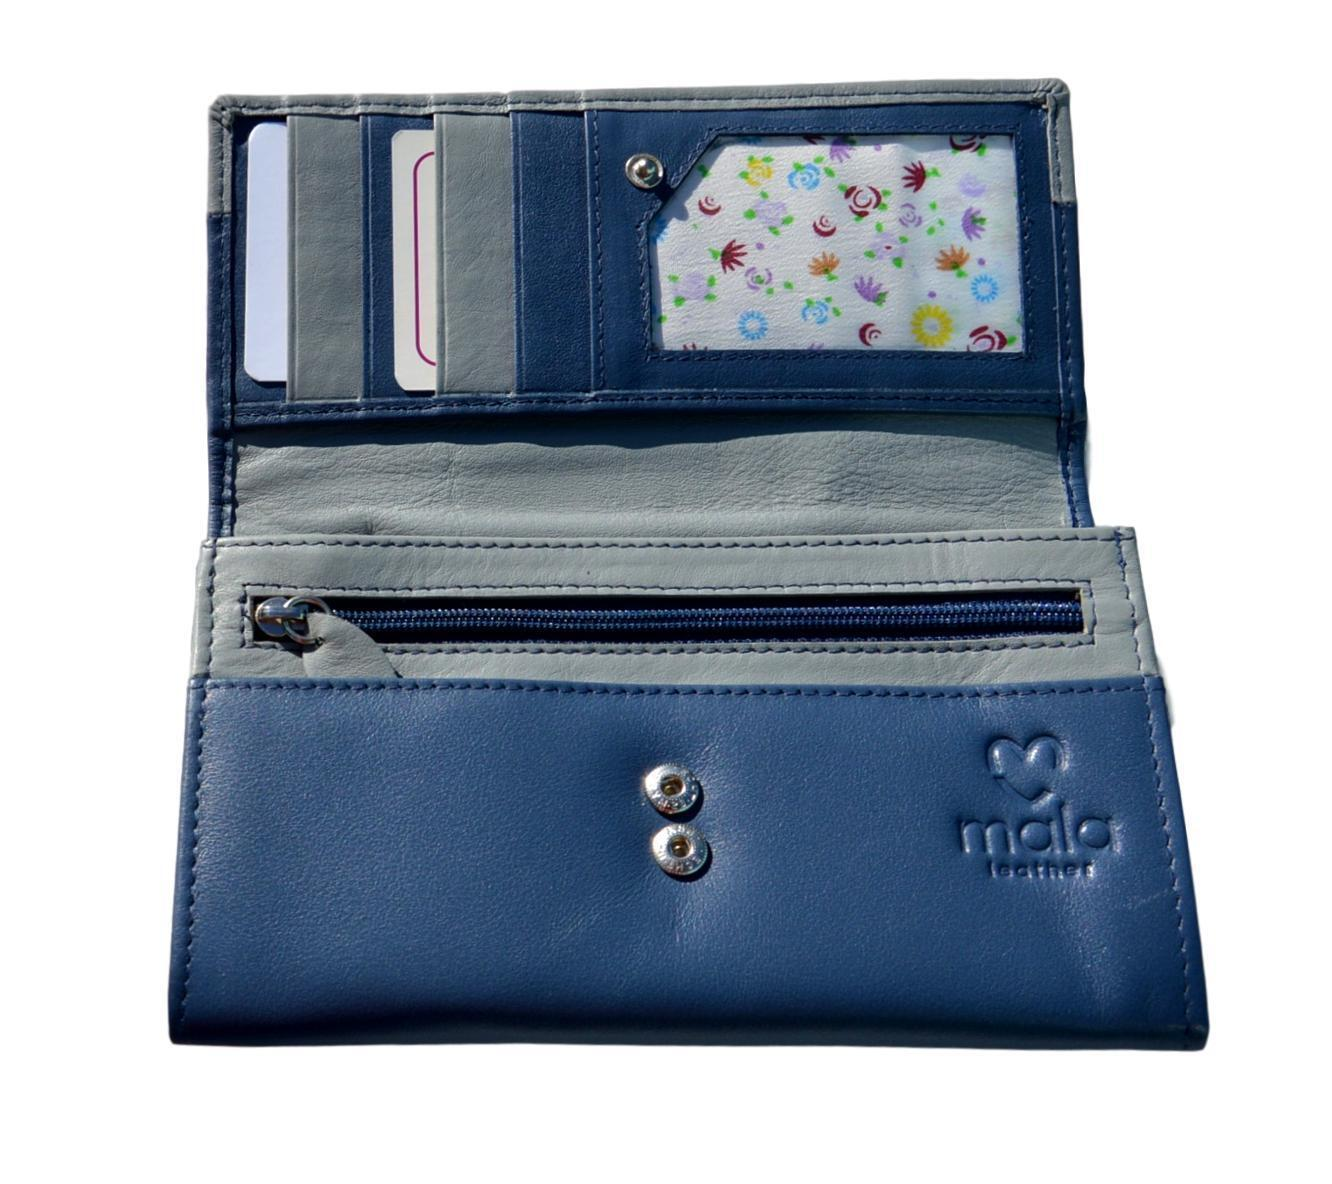 953f51e3855 Mala Leather Cats on Wall Flap Over Navy Blue Purse With Dustbag ...